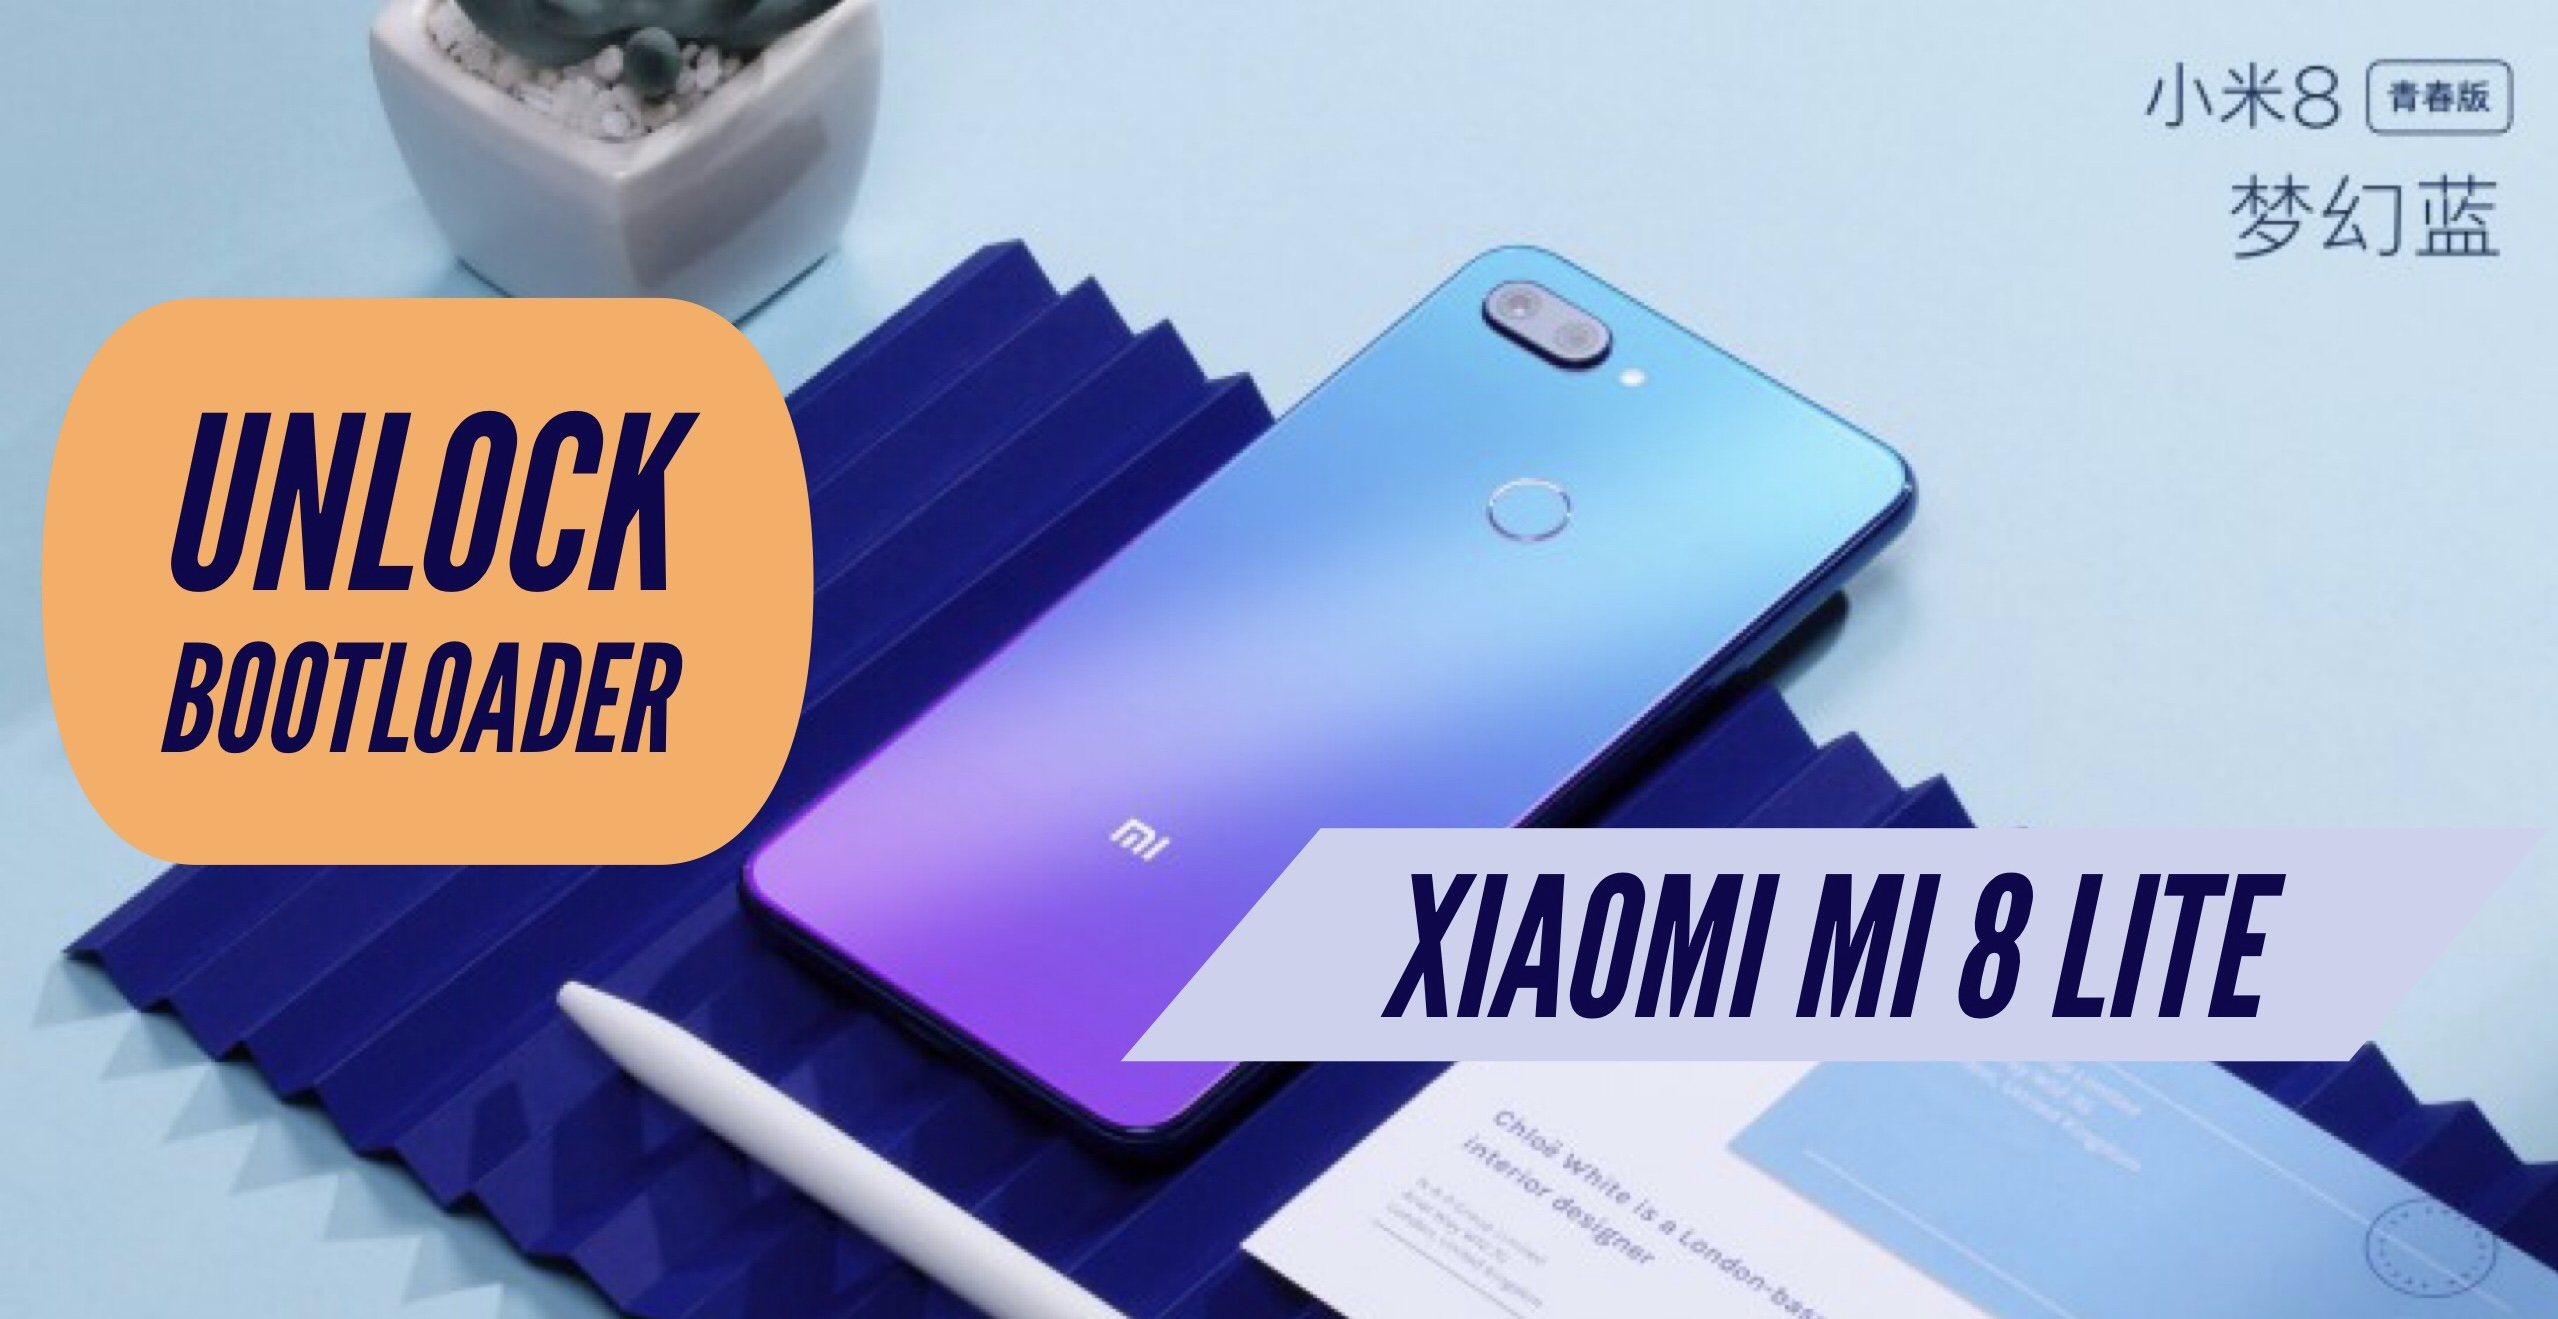 How to Unlock Bootloader on Xiaomi Mi 8 Lite? Mi Flash Unlock TOOL!